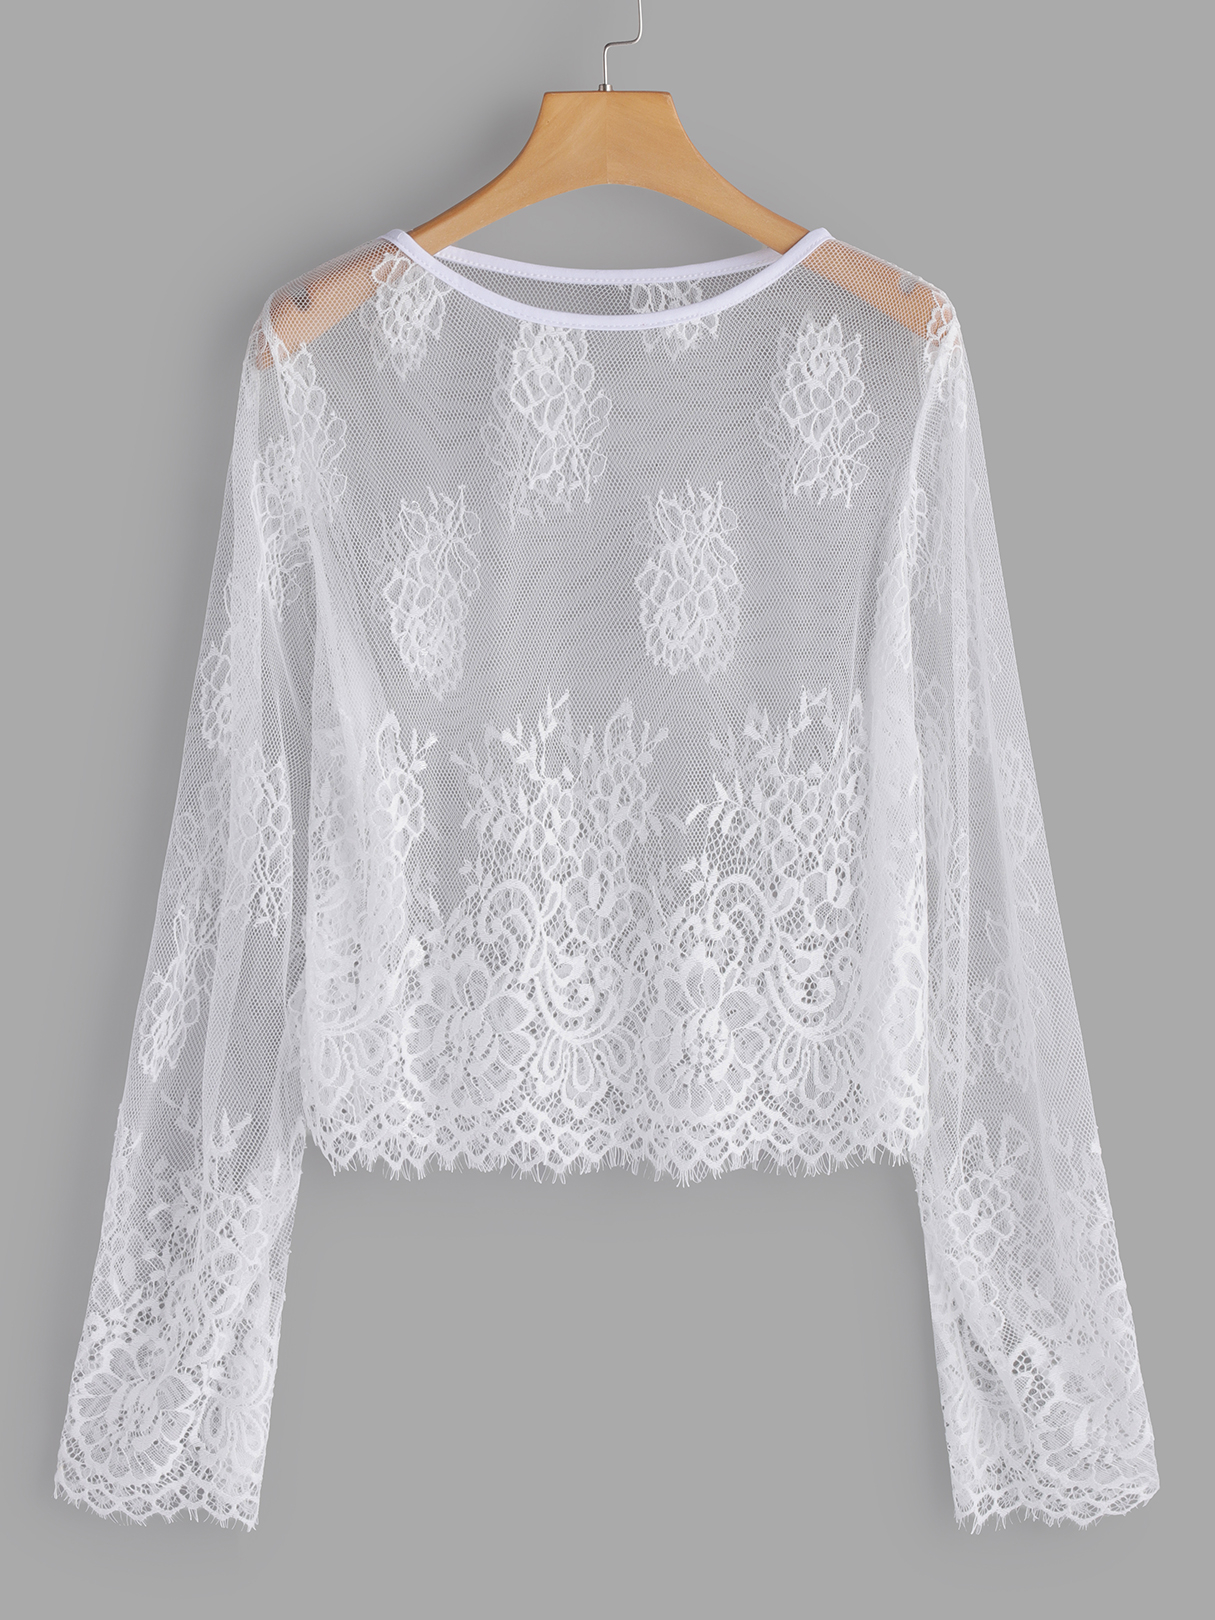 White Lace Details See-through Long Sleeves Blouse white see through crochet lace cold shoulder long sleeves dresses